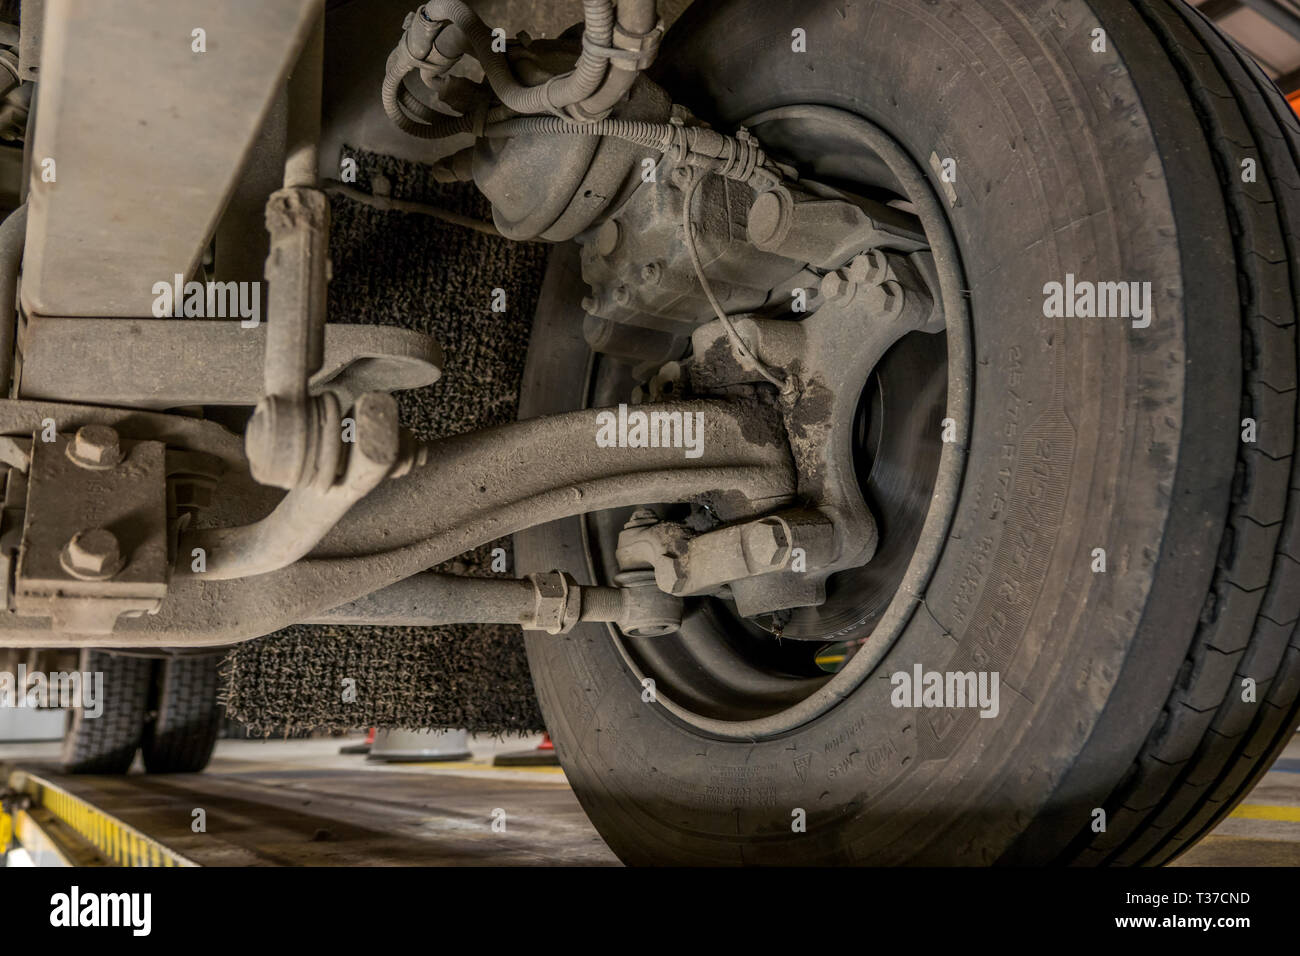 View of disc brakes,suspension and steering joints on a small truck from maintenance pit. - Stock Image